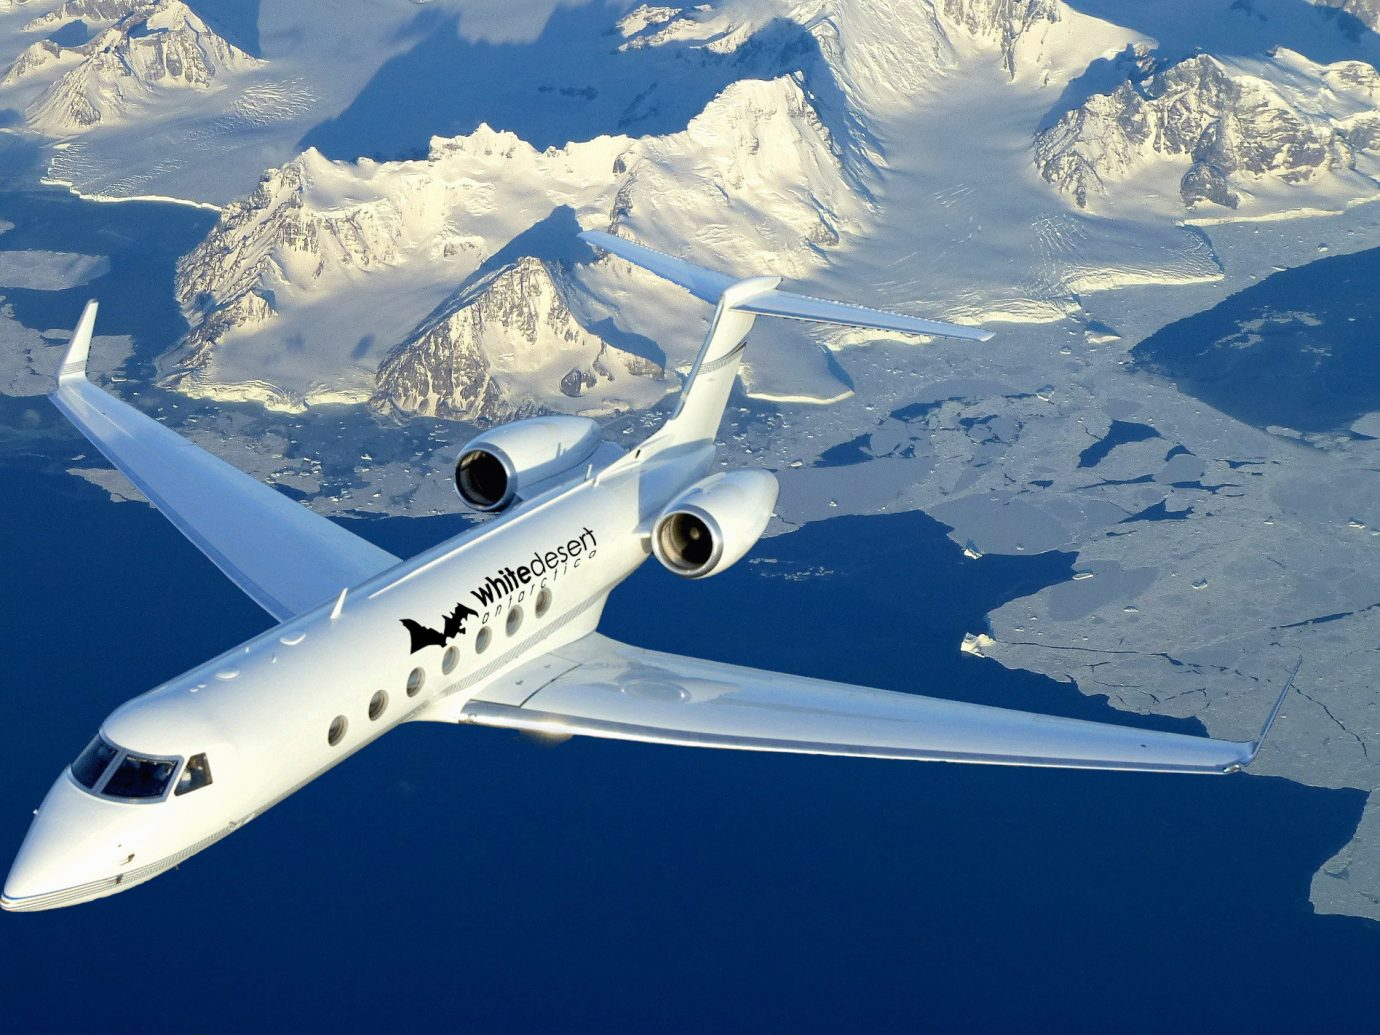 Luxury Travel Trip Ideas airplane airline aircraft airliner flight air travel aerospace engineering aviation sky wide body aircraft jet aircraft narrow body aircraft general aviation mountain range airbus business jet glacial landform wing